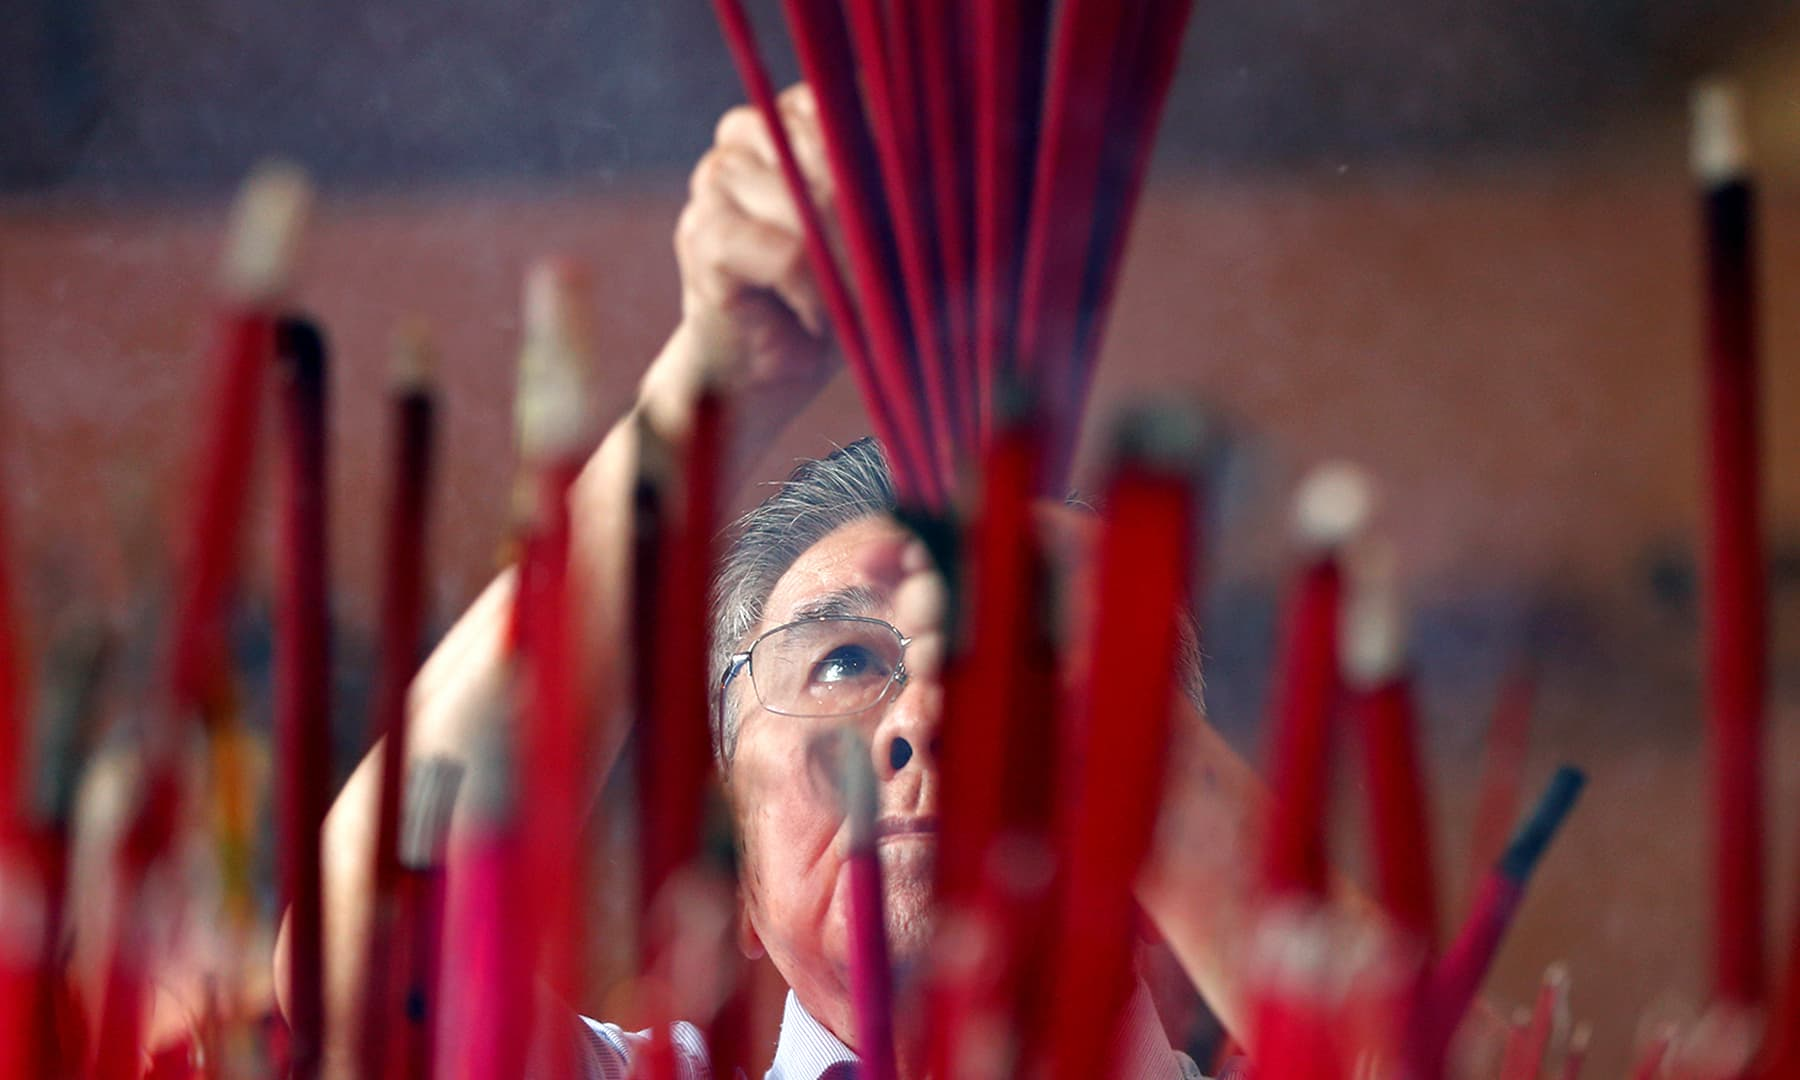 A man prays during Chinese Lunar New Year celebrations at a temple in Jakarta, Indonesia on January 25, 2020. — Reuters